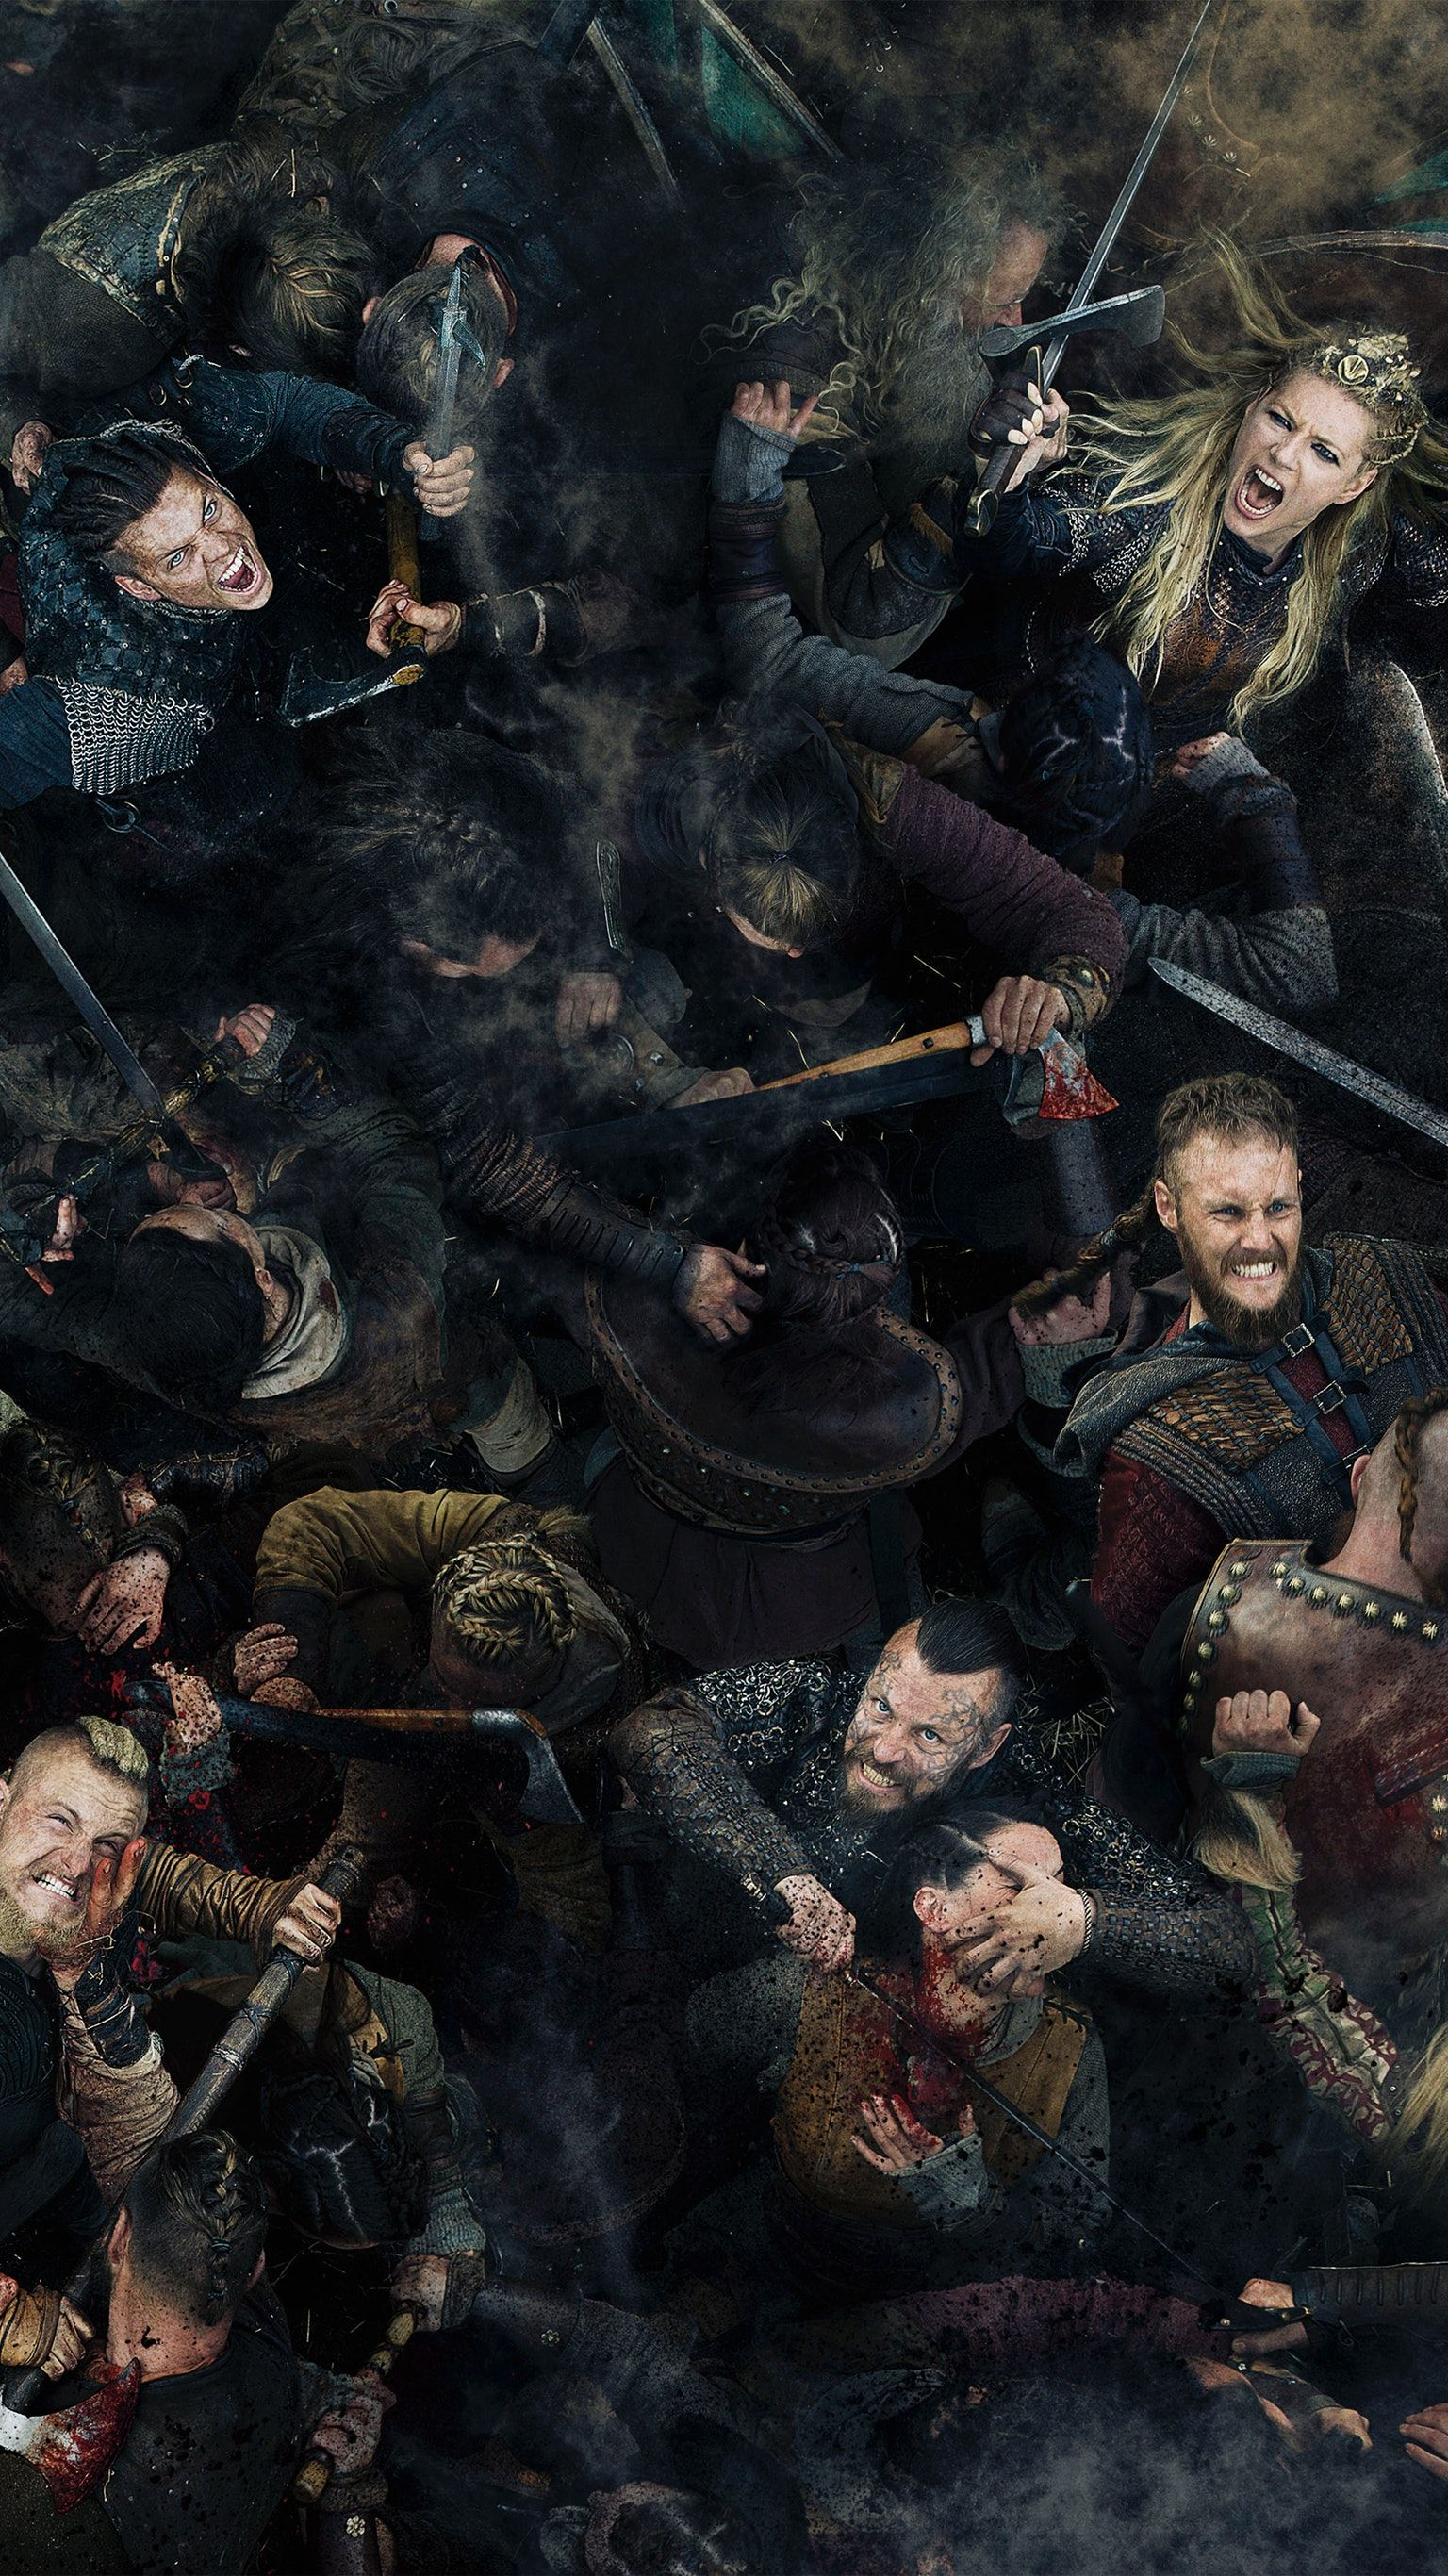 Game of thrones s03e08 download